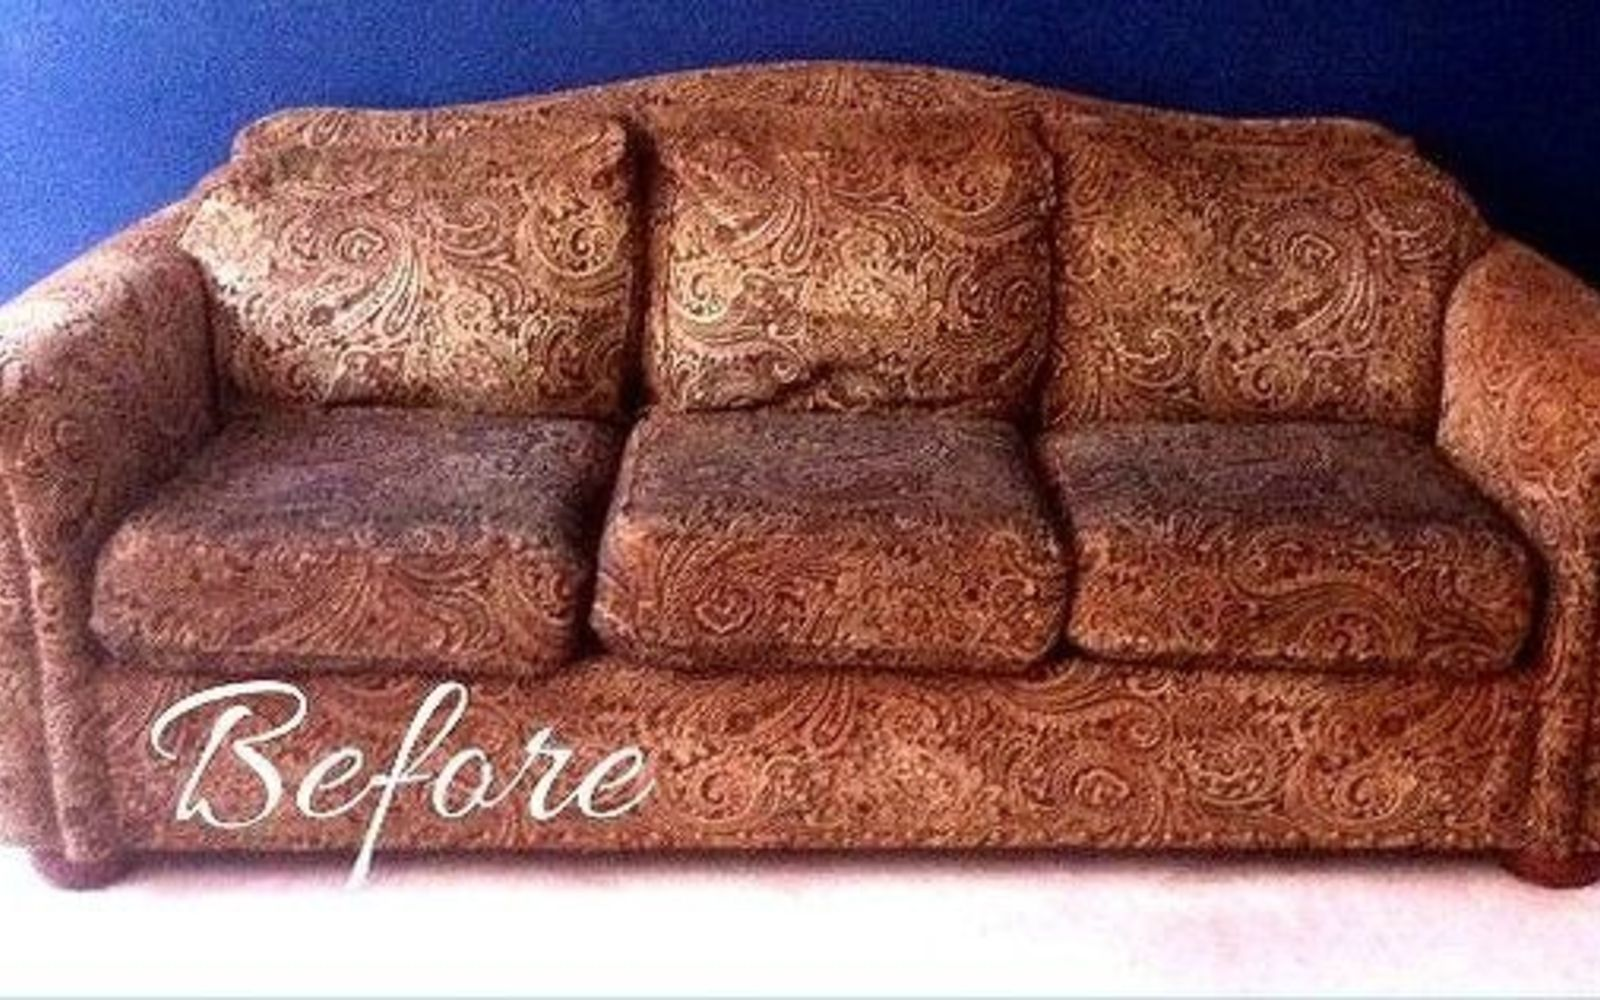 s hide your couch s wear and tear with these 9 ingenious ideas, painted furniture, Before Thrift store disaster